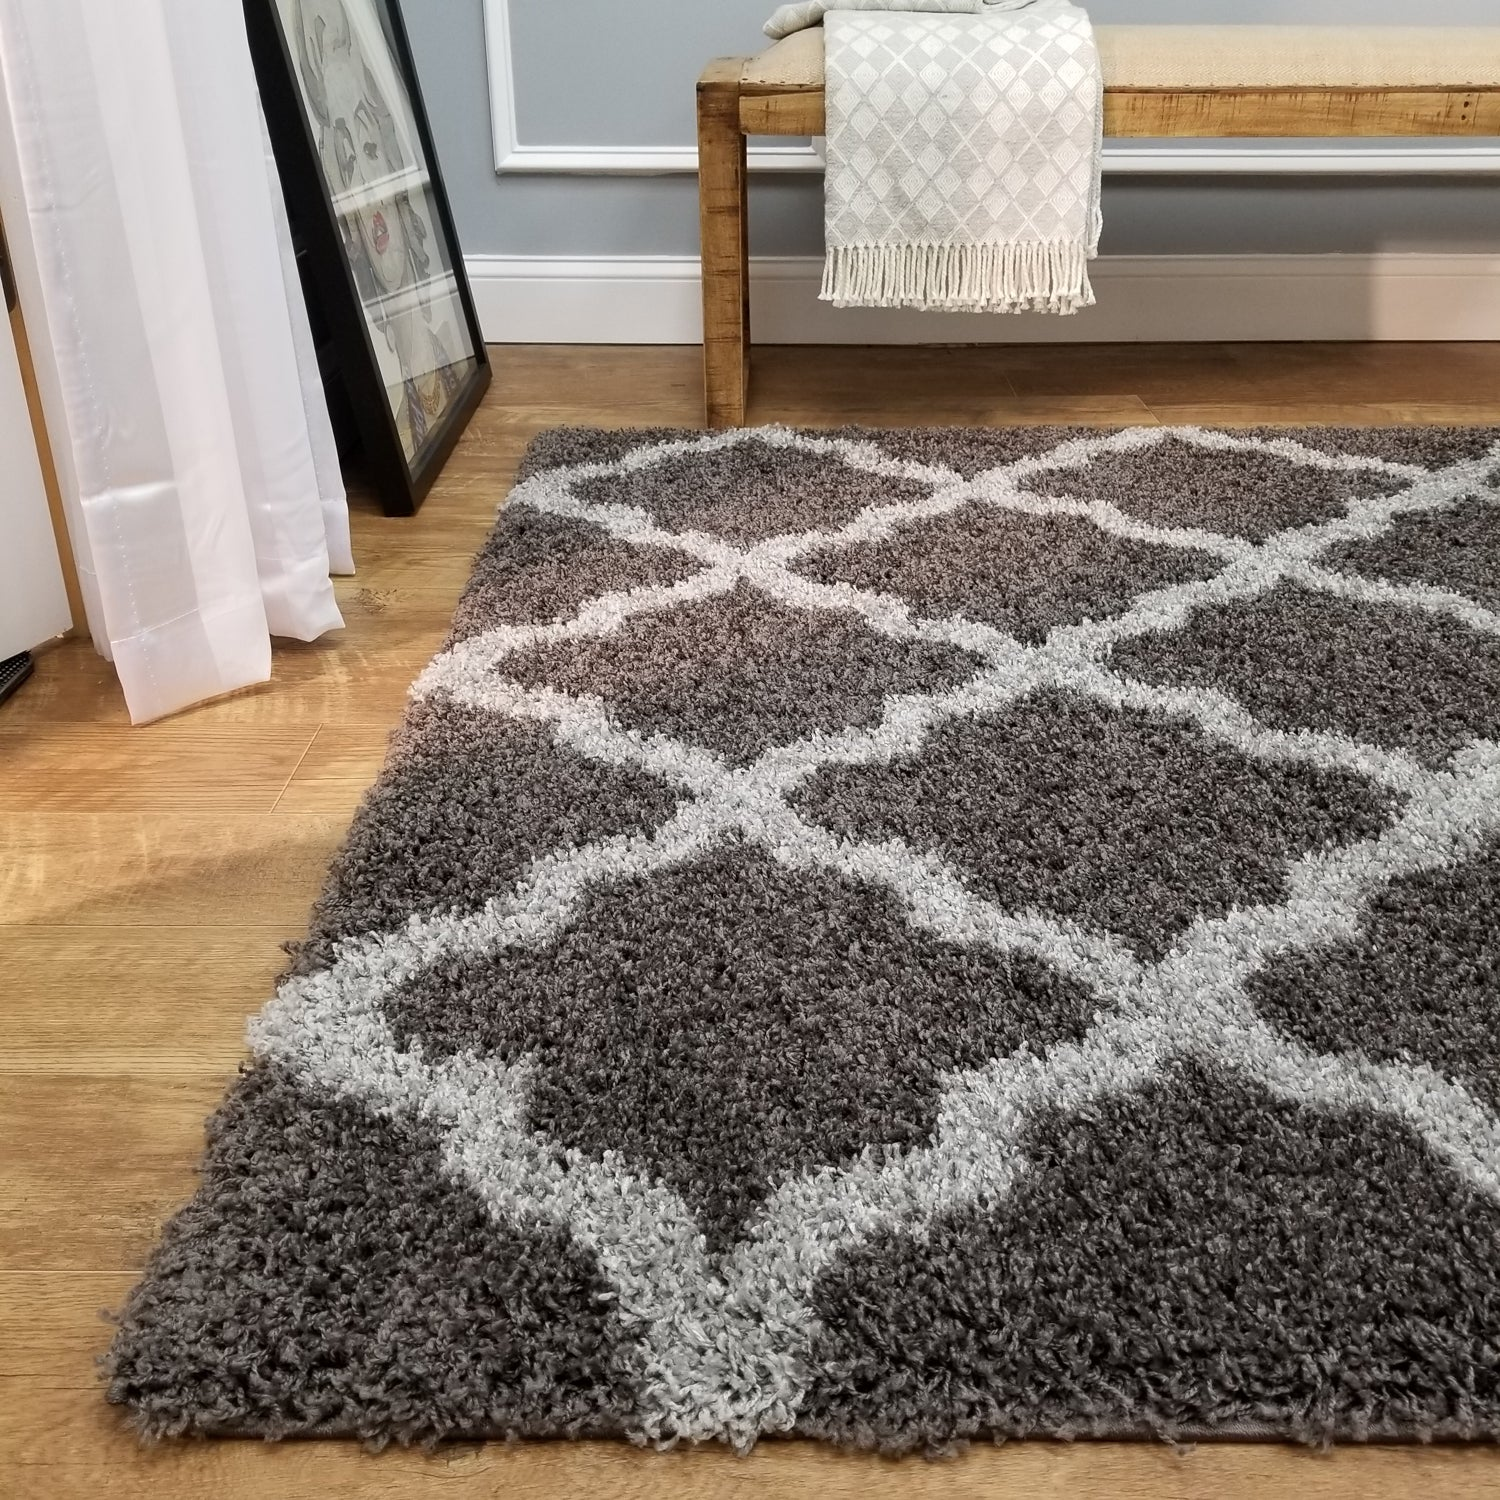 Cozy Optimum Quality 1.6 inch thick Trellis Dark Gray Shag Area Rug